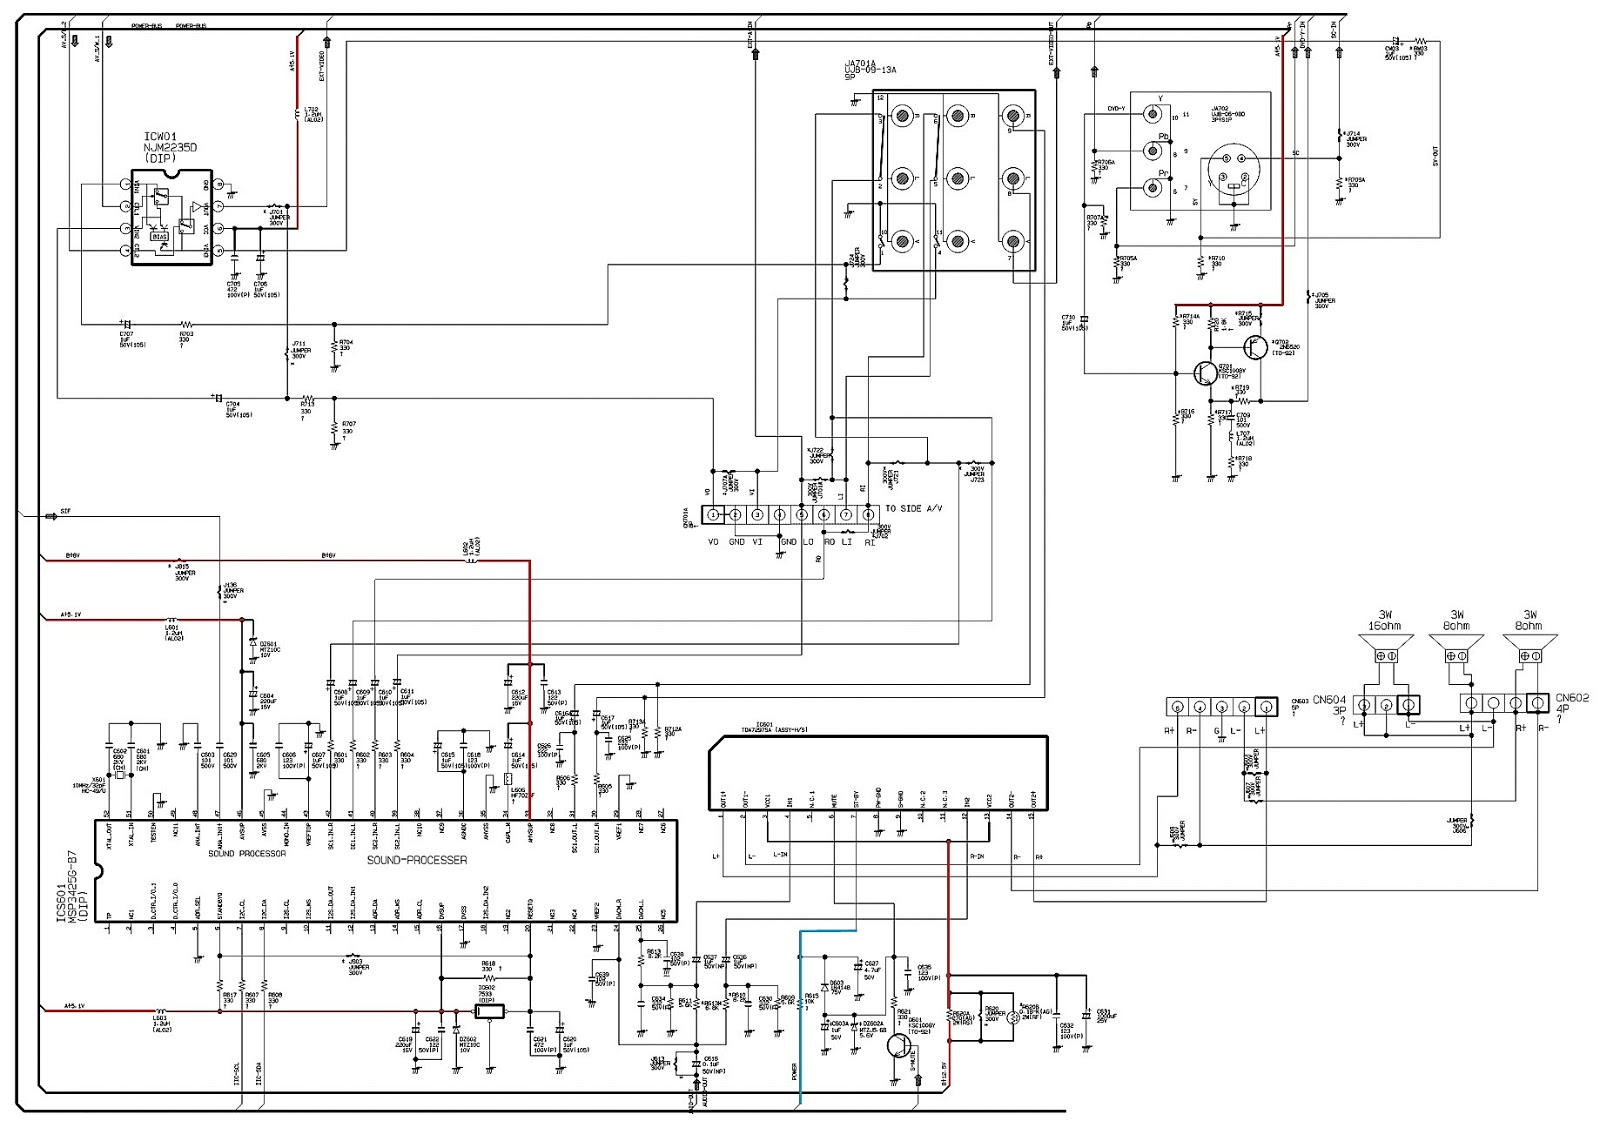 small resolution of wiring diagram for receiver to samsung tv schematic diagram wiring diagram for receiver to samsung tv